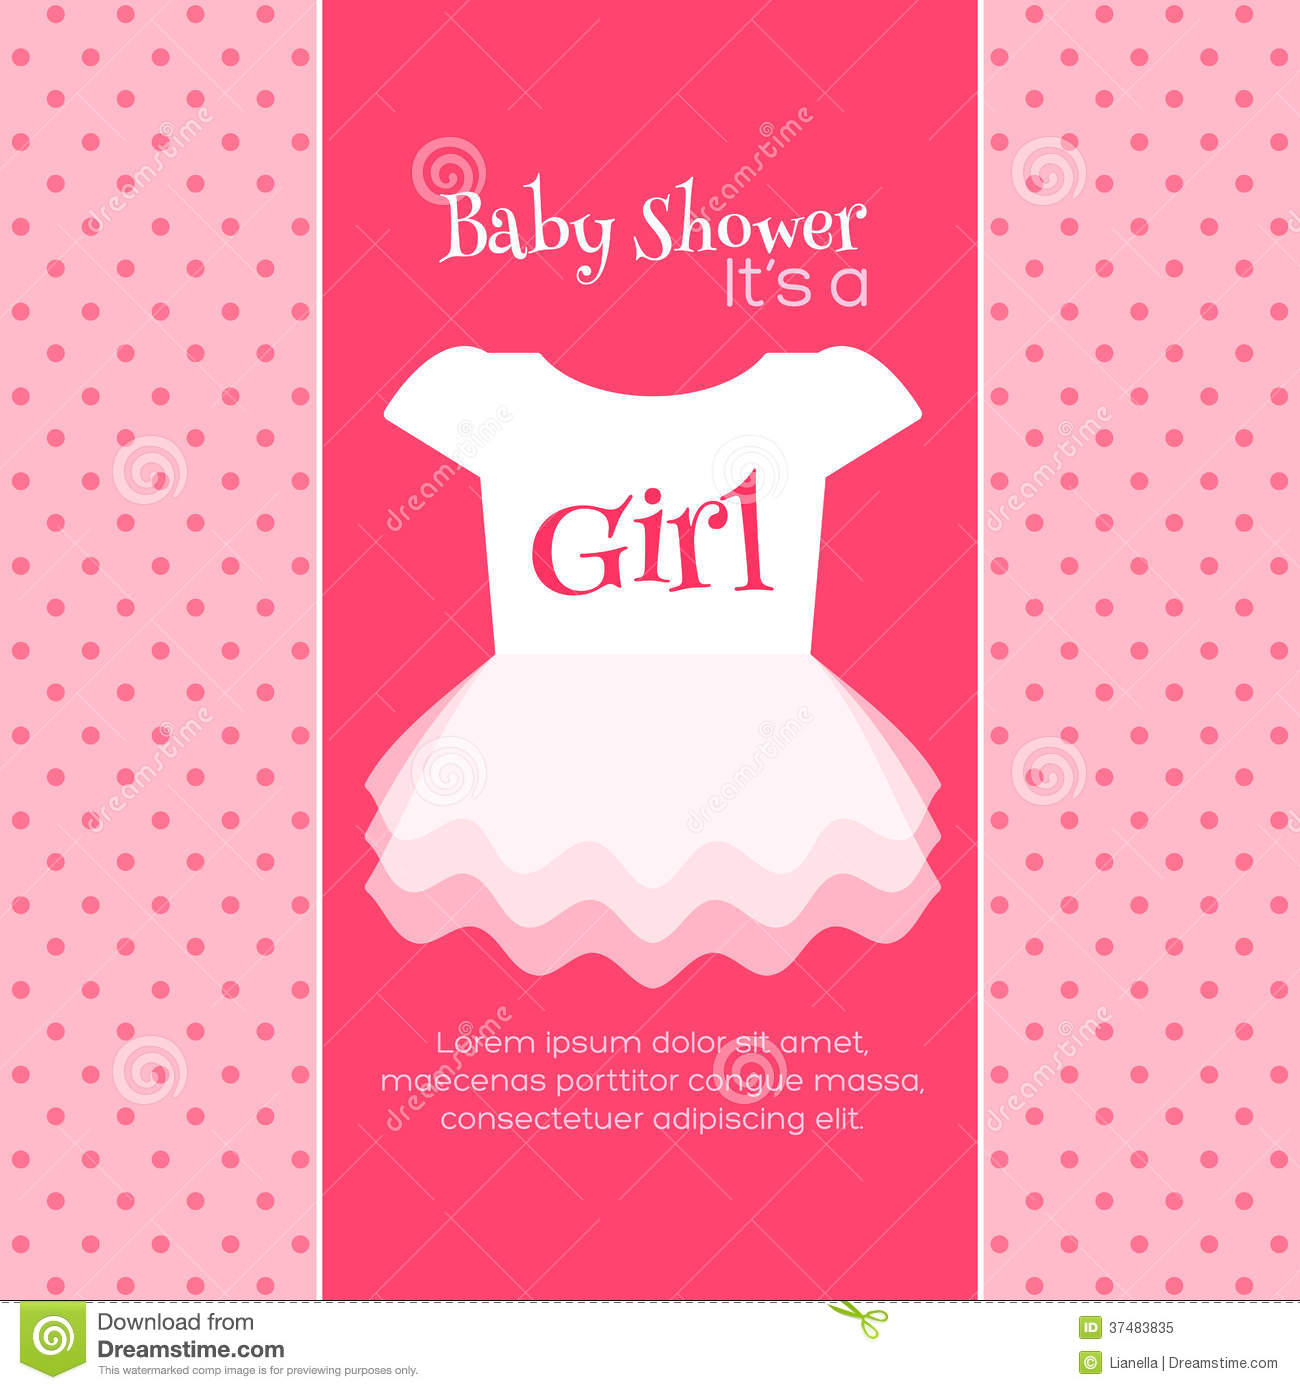 Baby shower invitation template stock illustration illustration of baby shower invitation template filmwisefo